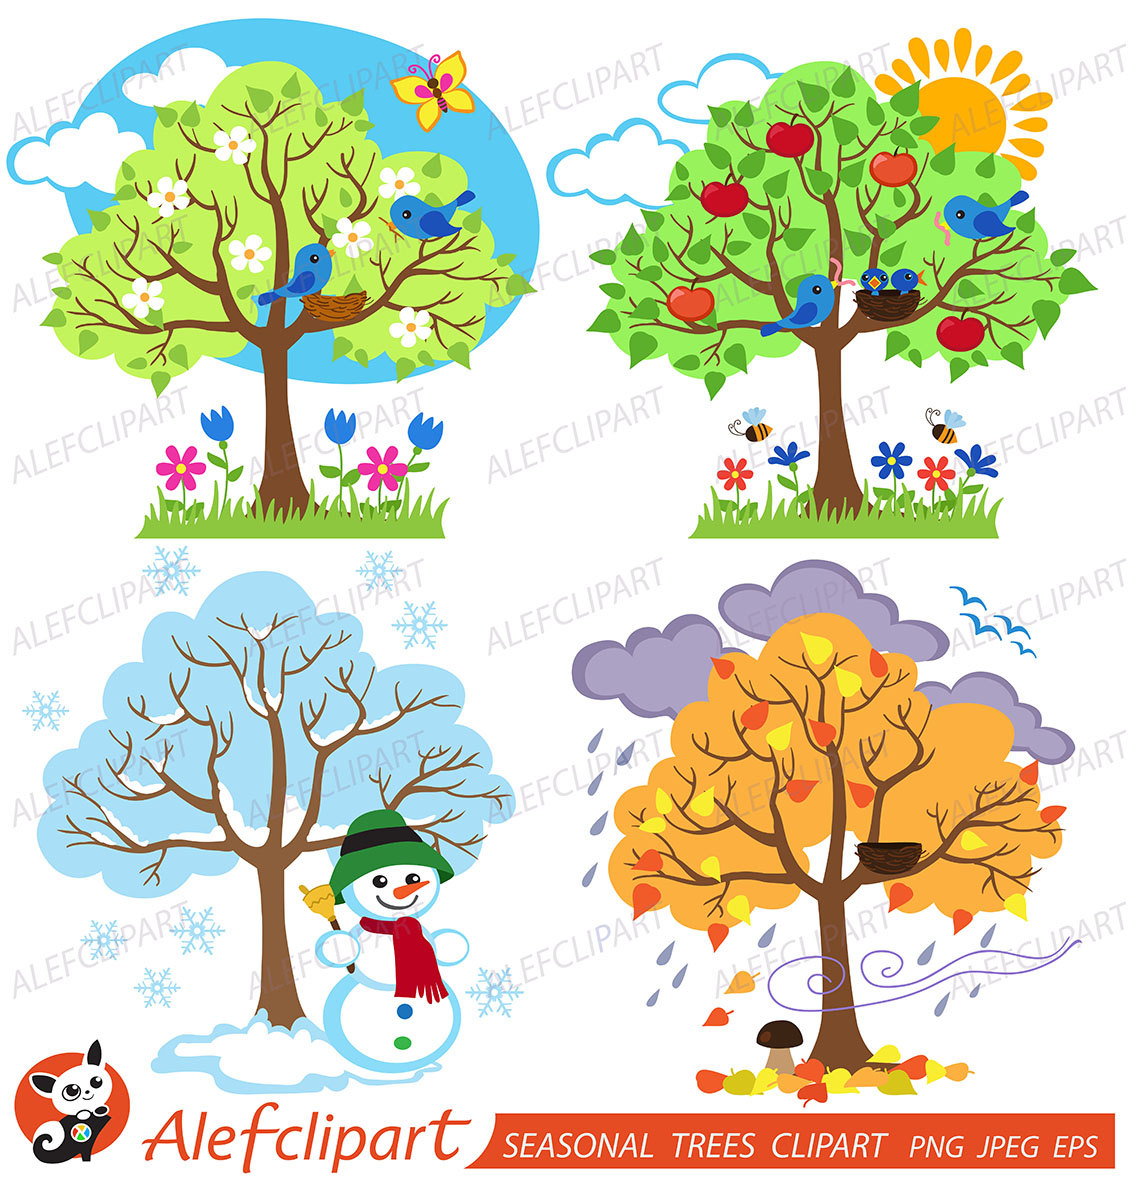 Four seasons clipart.